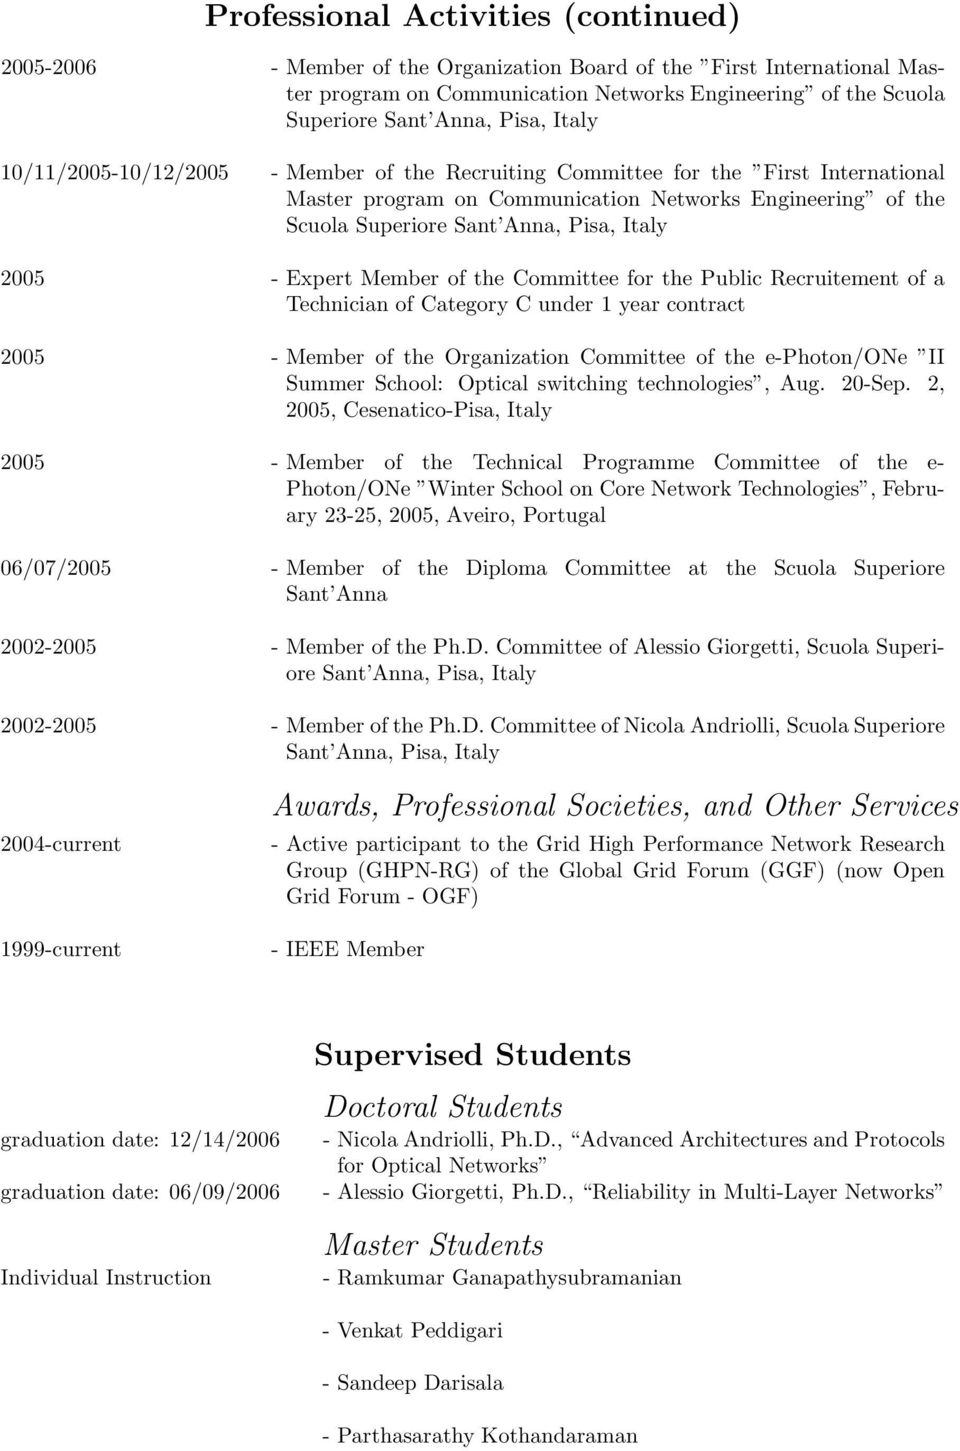 2005 - Expert Member of the Committee for the Public Recruitement of a Technician of Category C under 1 year contract 2005 - Member of the Organization Committee of the e-photon/one II Summer School: